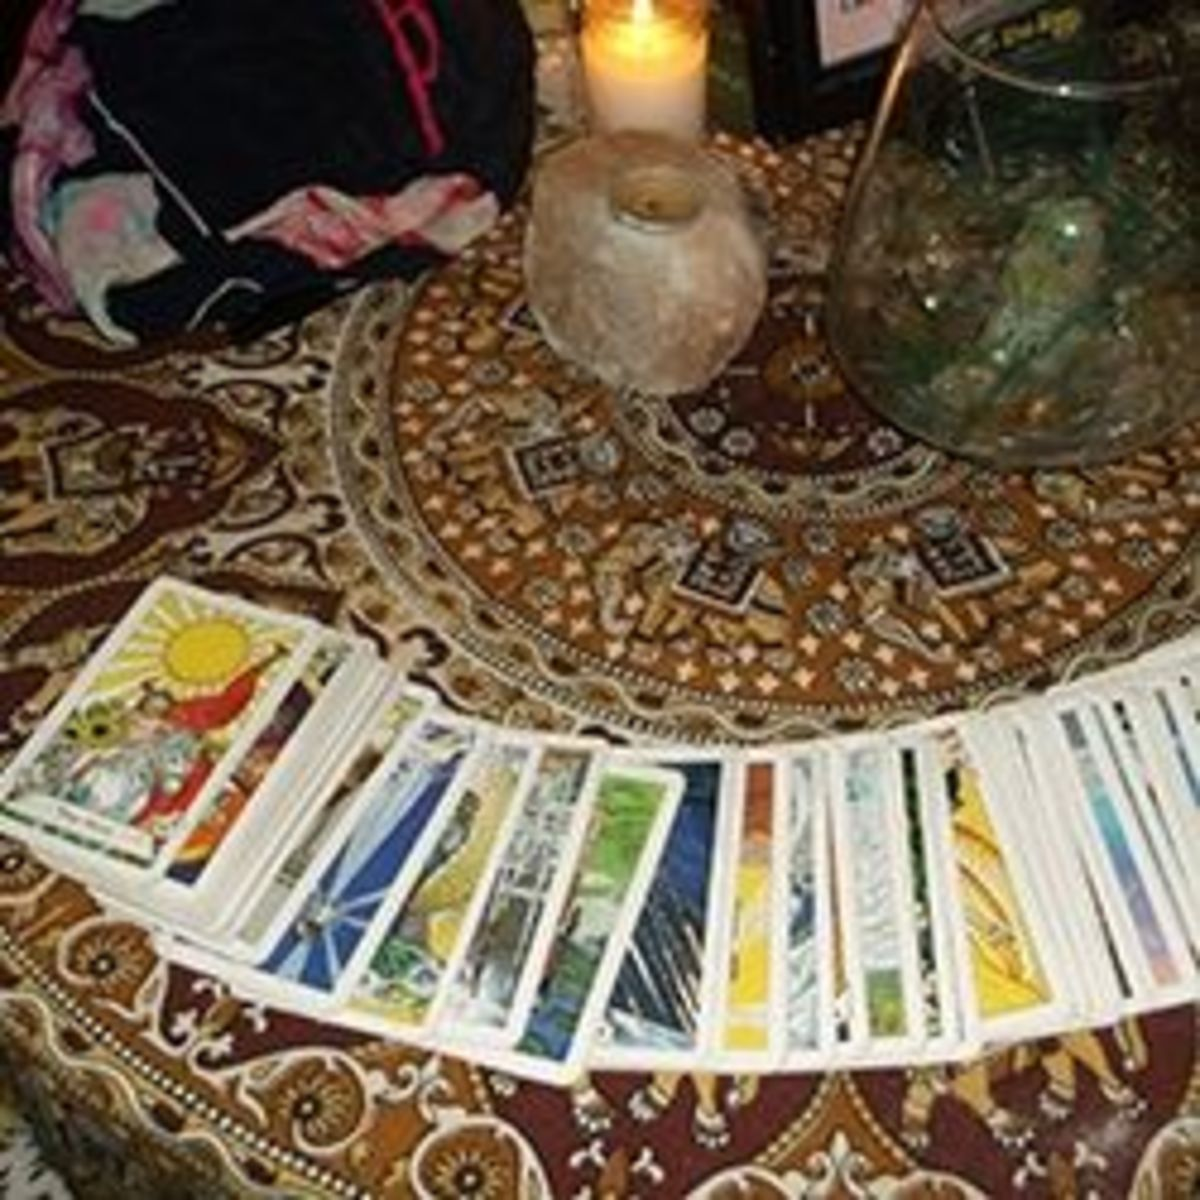 My tarot deck and table at Cafe Tu Tu Tango, Orlando